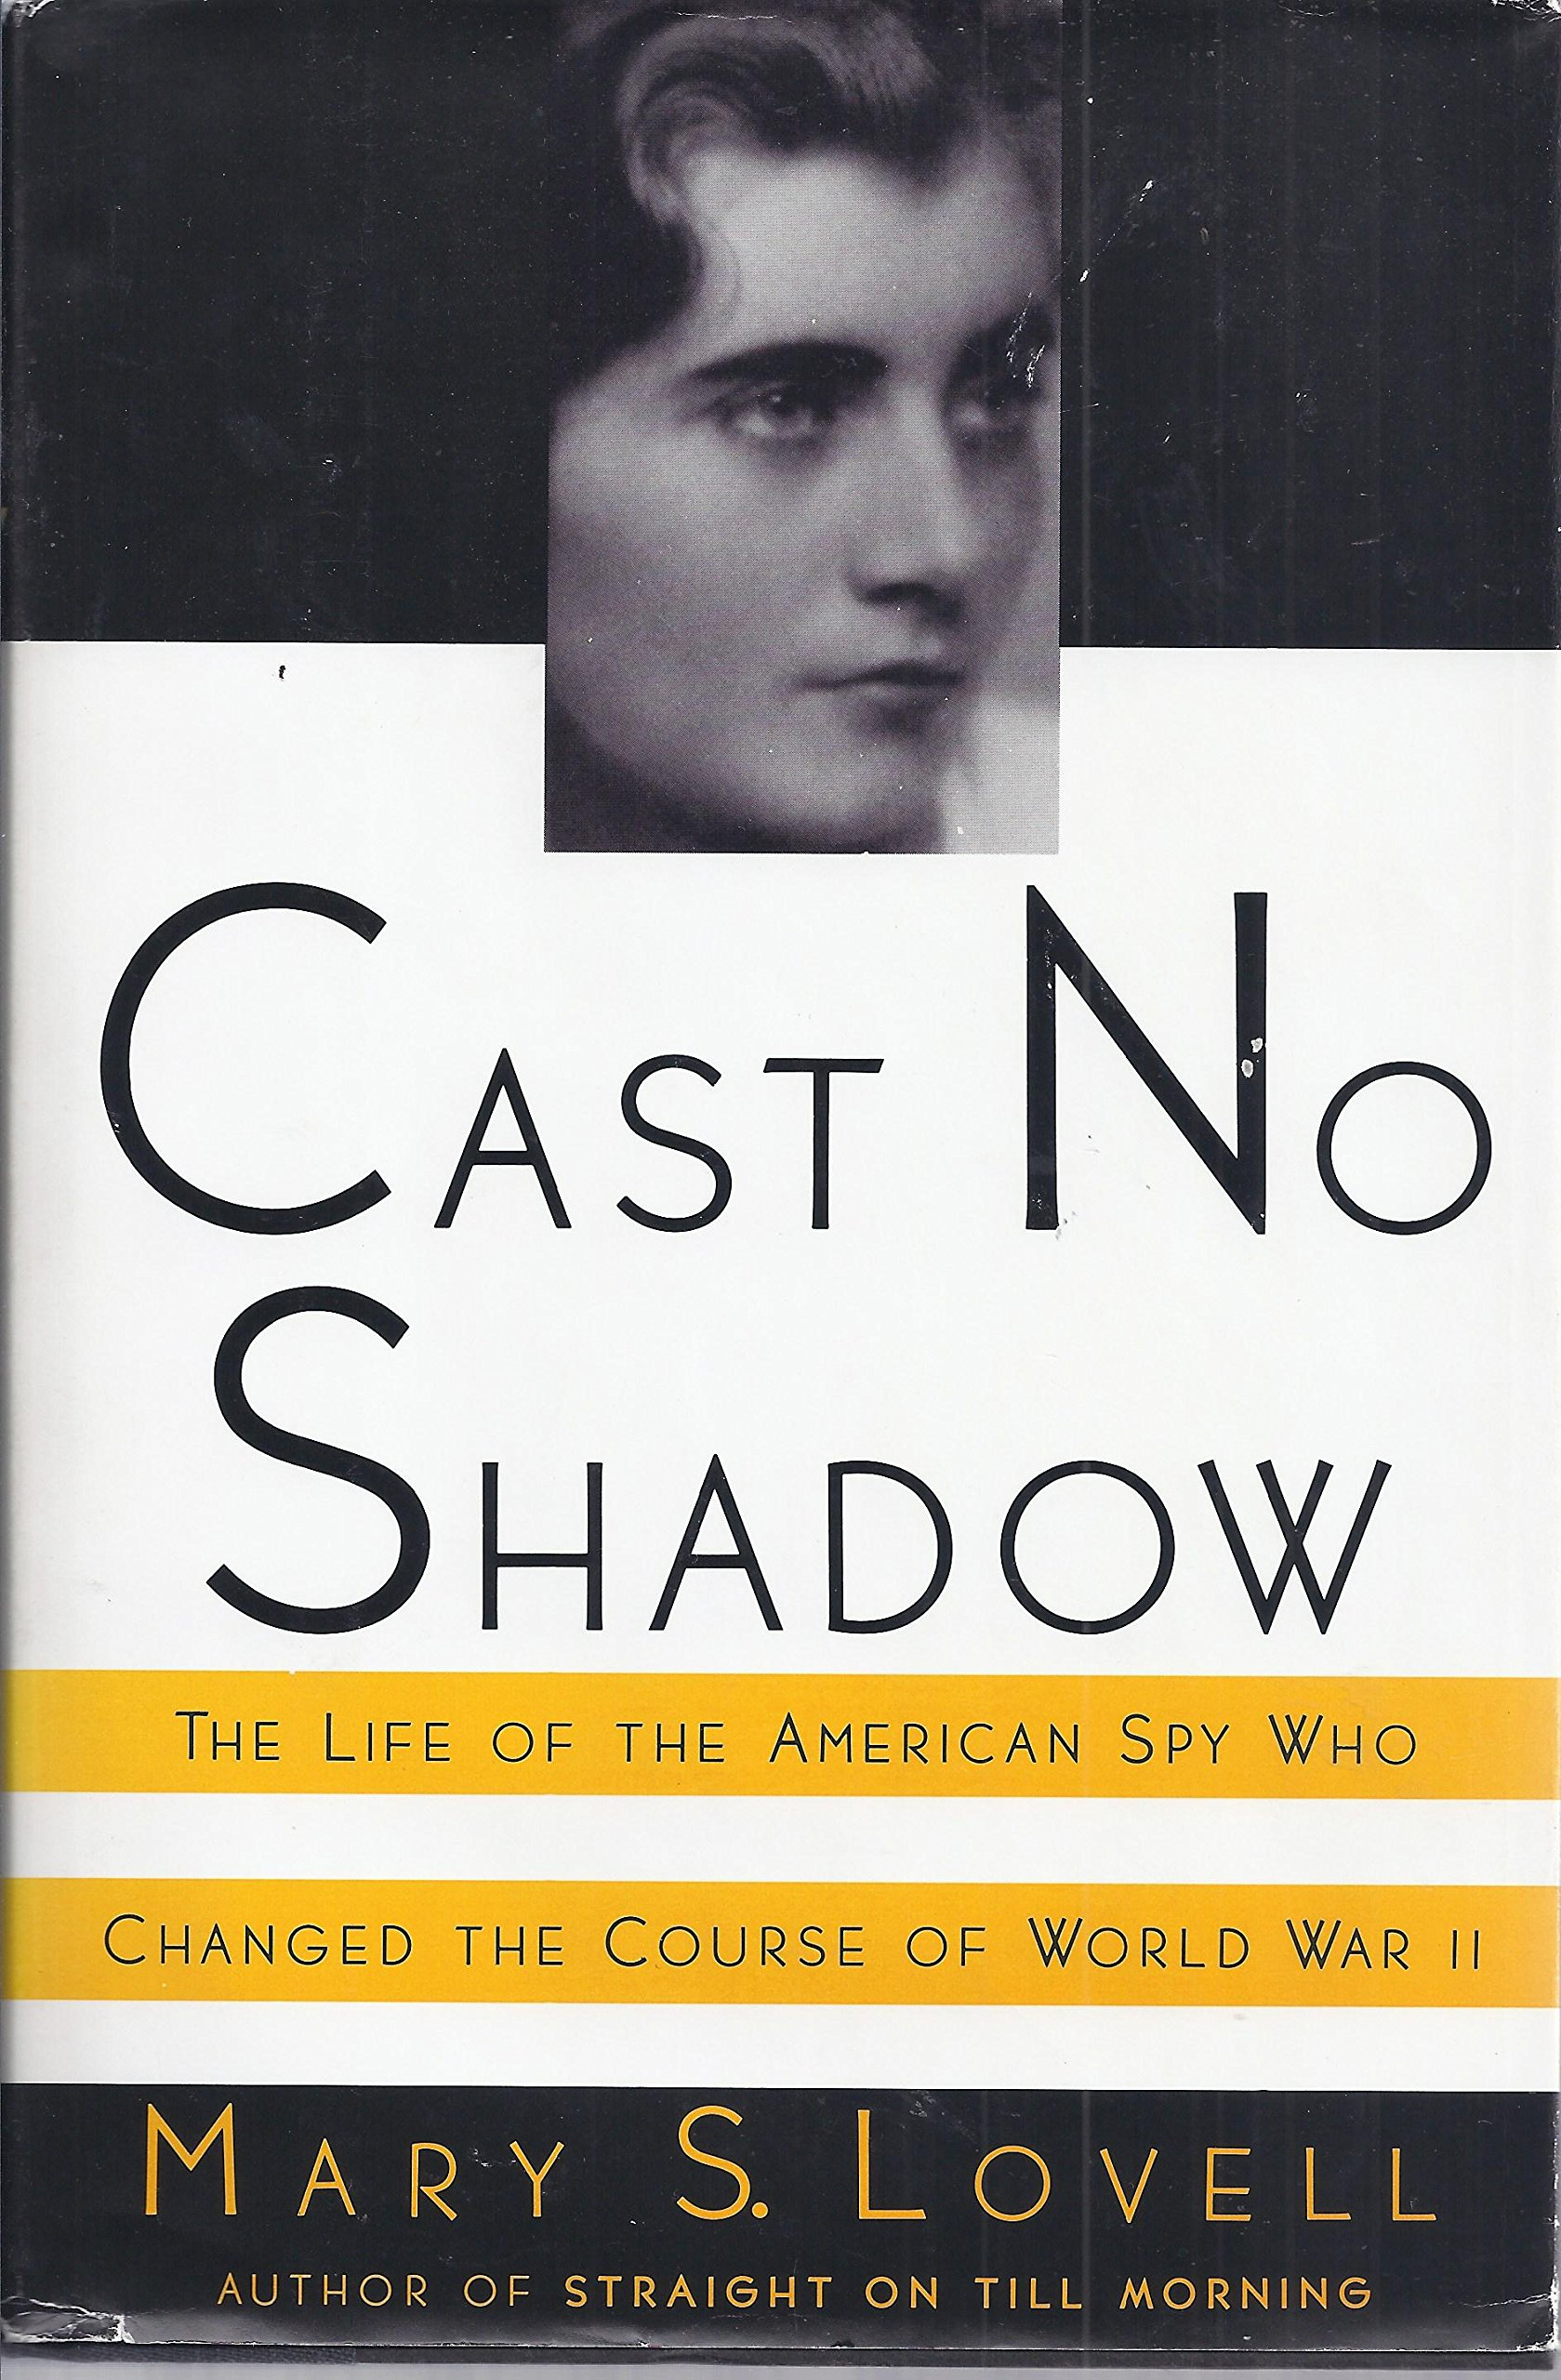 Cast No Shadow: The Life of the American Spy Who Changed the Course of World War II